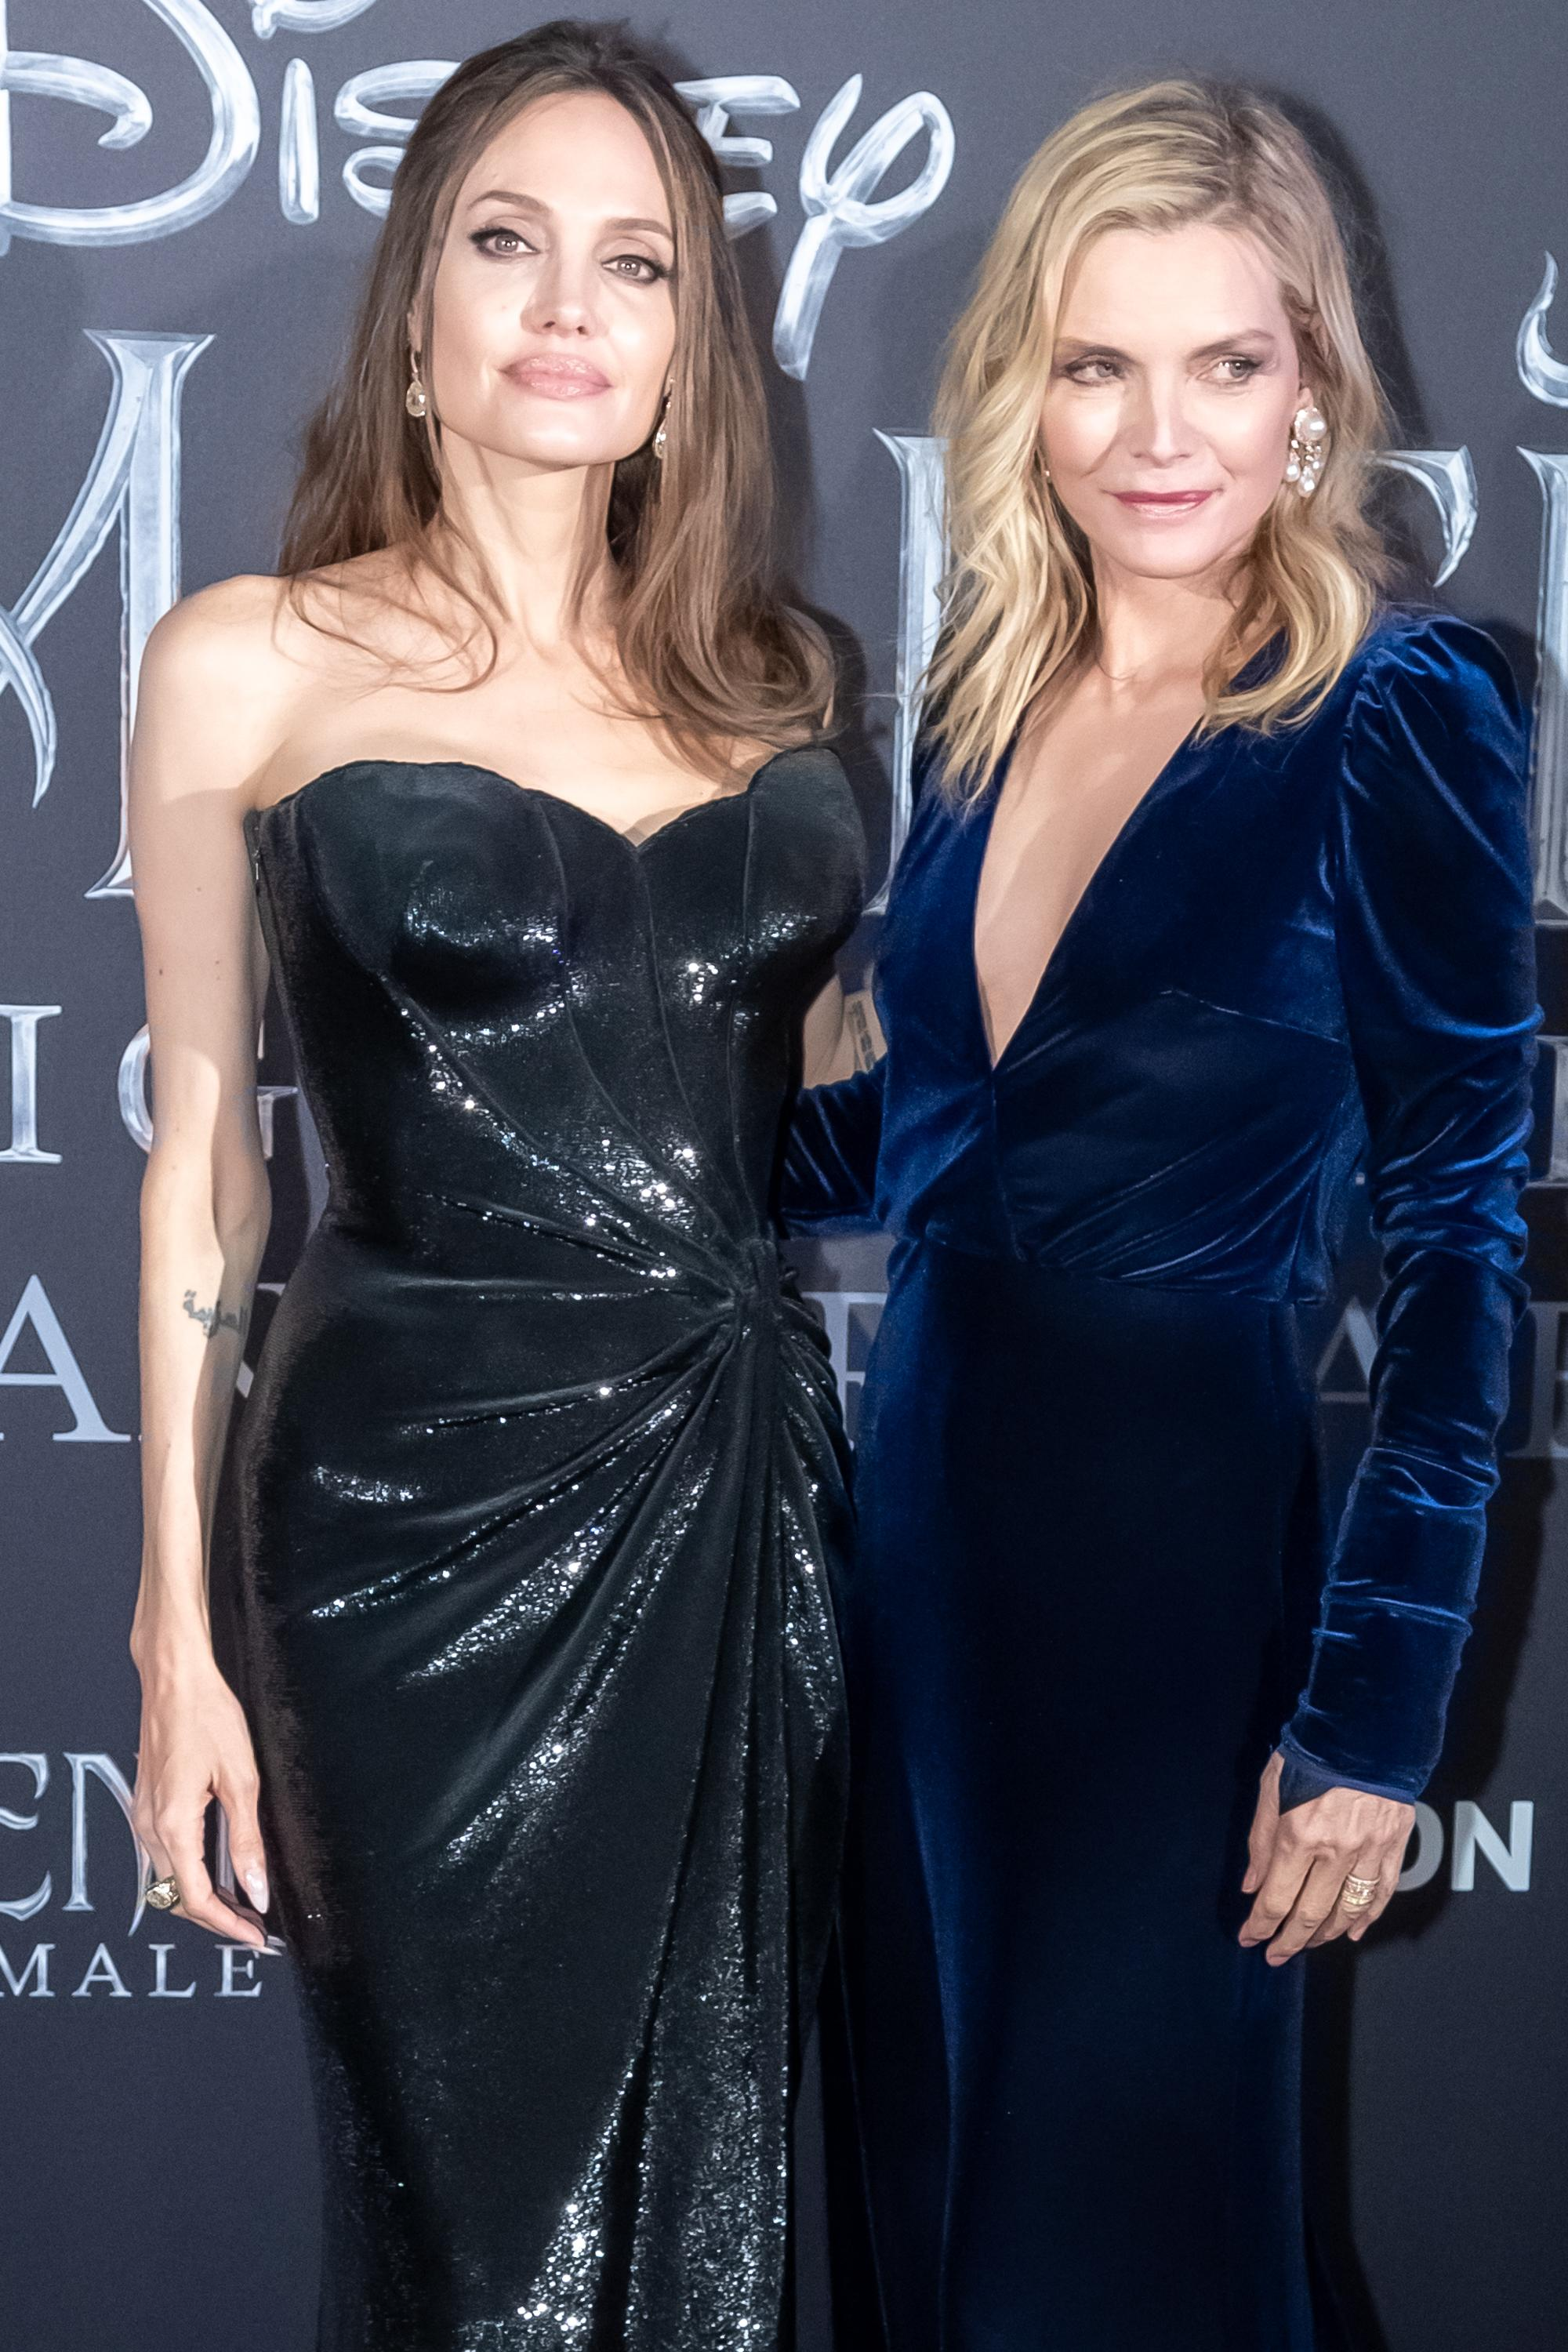 Angelina Jolie and Michelle Pfeiffer both opted for block colour gowns at the premiere in Rome, Italy [Photo: Getty]